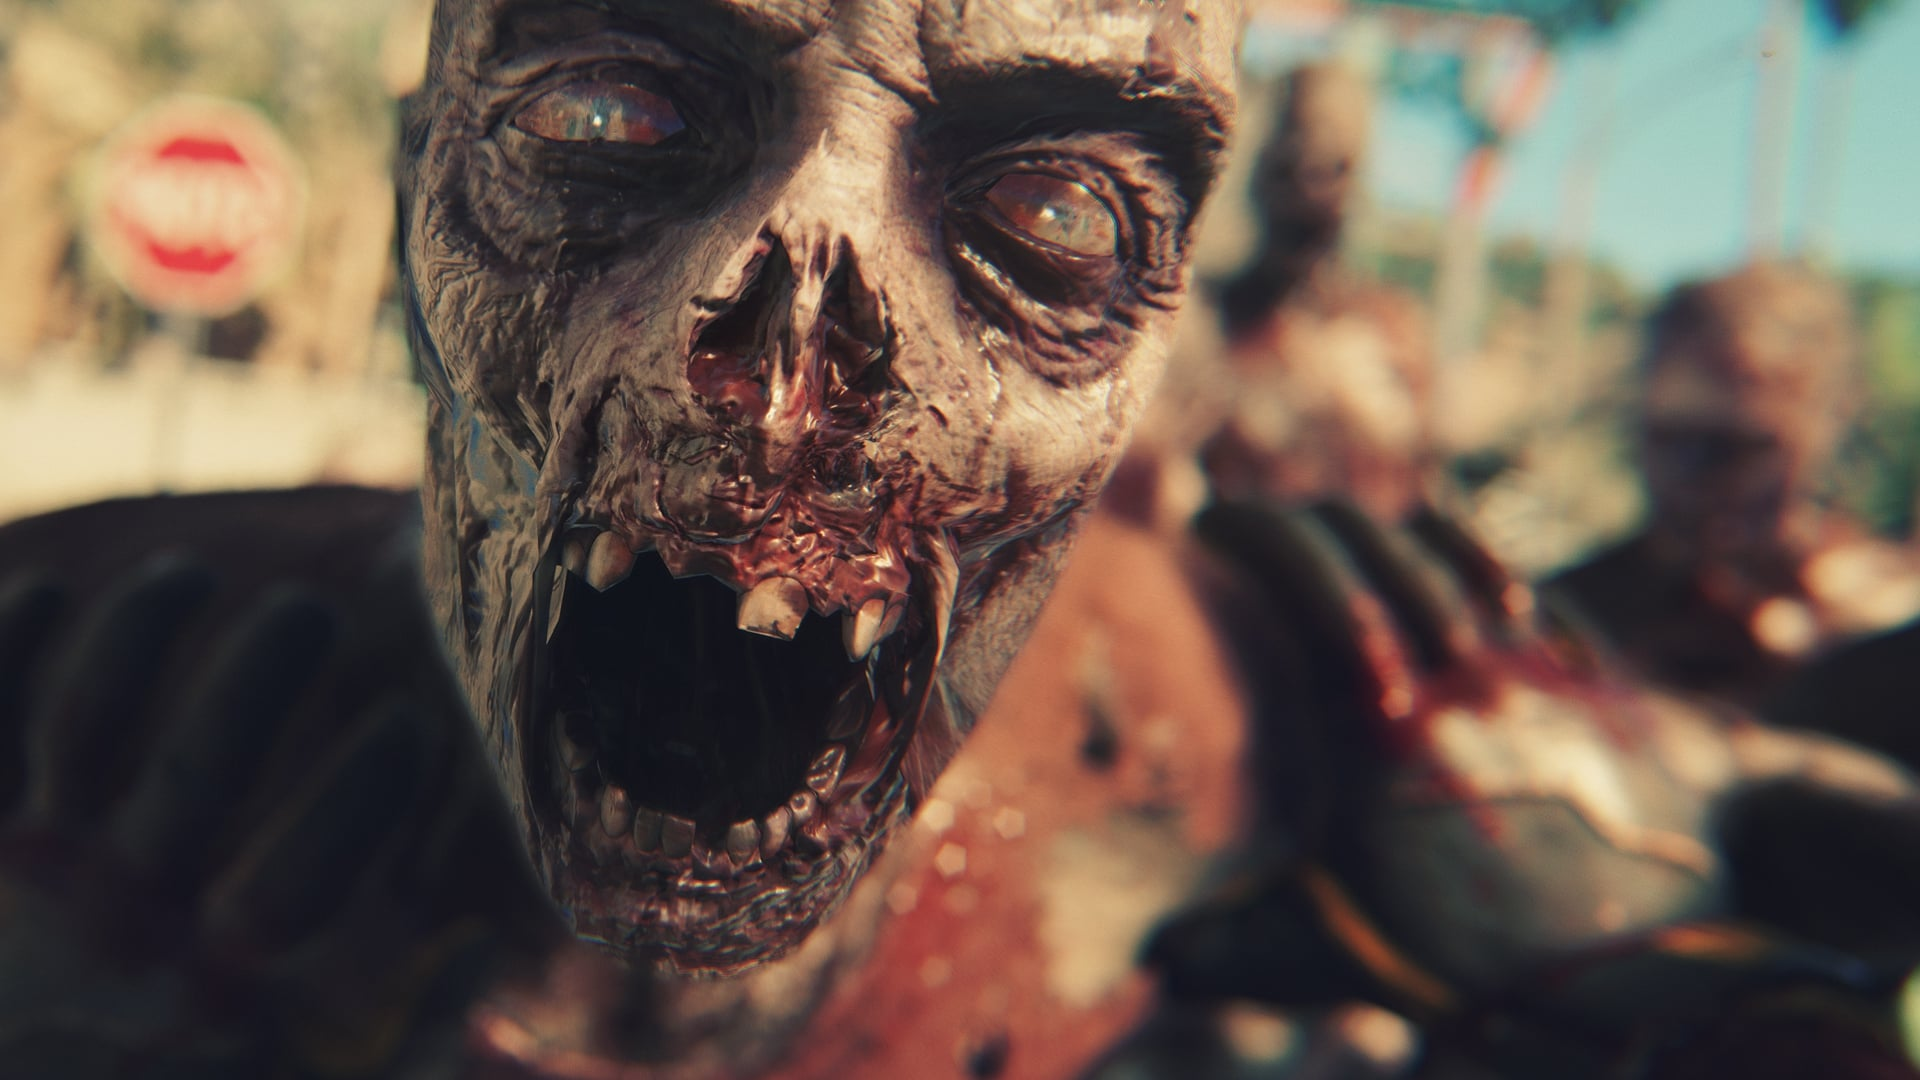 Hd Car Wallpapers 1080p Download Dead Island 2 Wallpapers High Quality Download